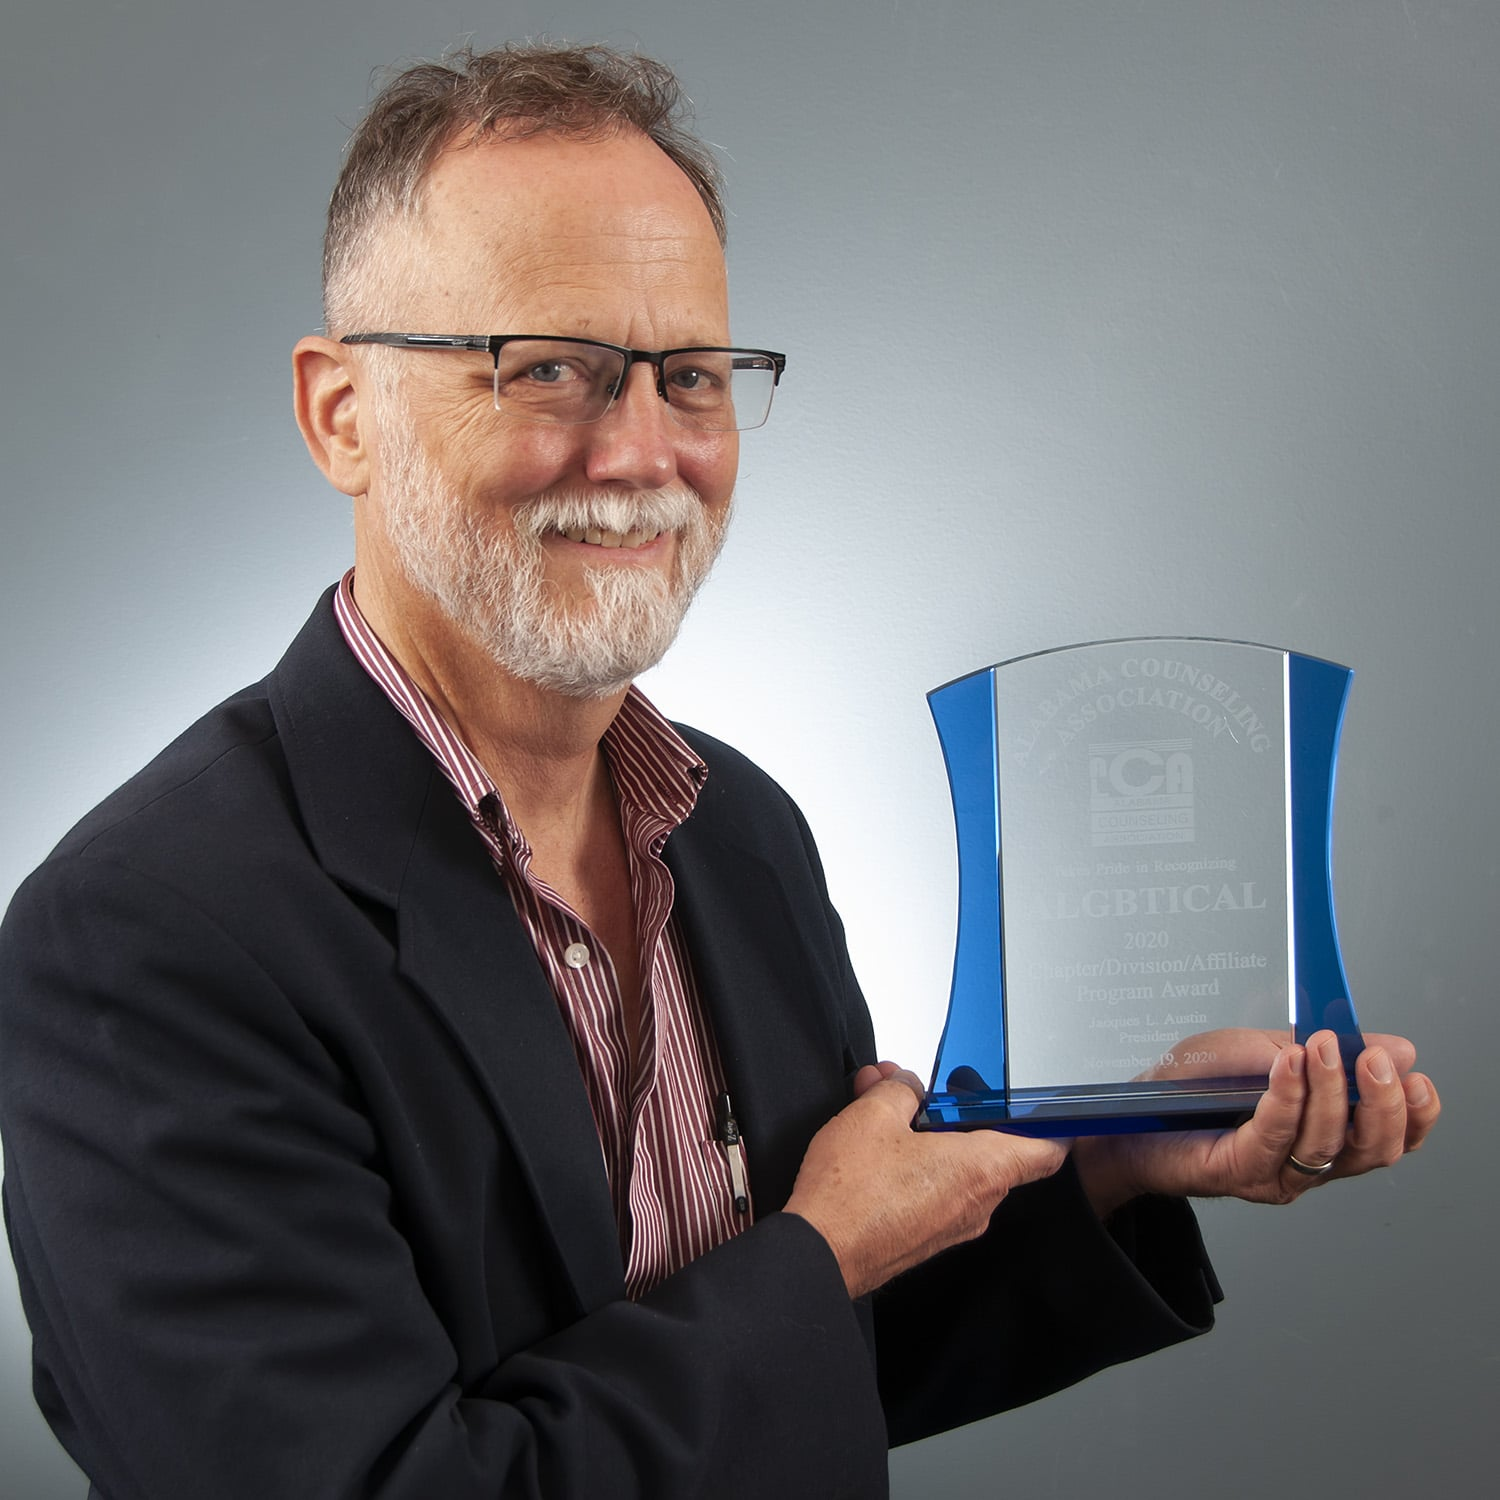 Paul Hard receives counseling award for organizing LGBTQ pandemic workshop